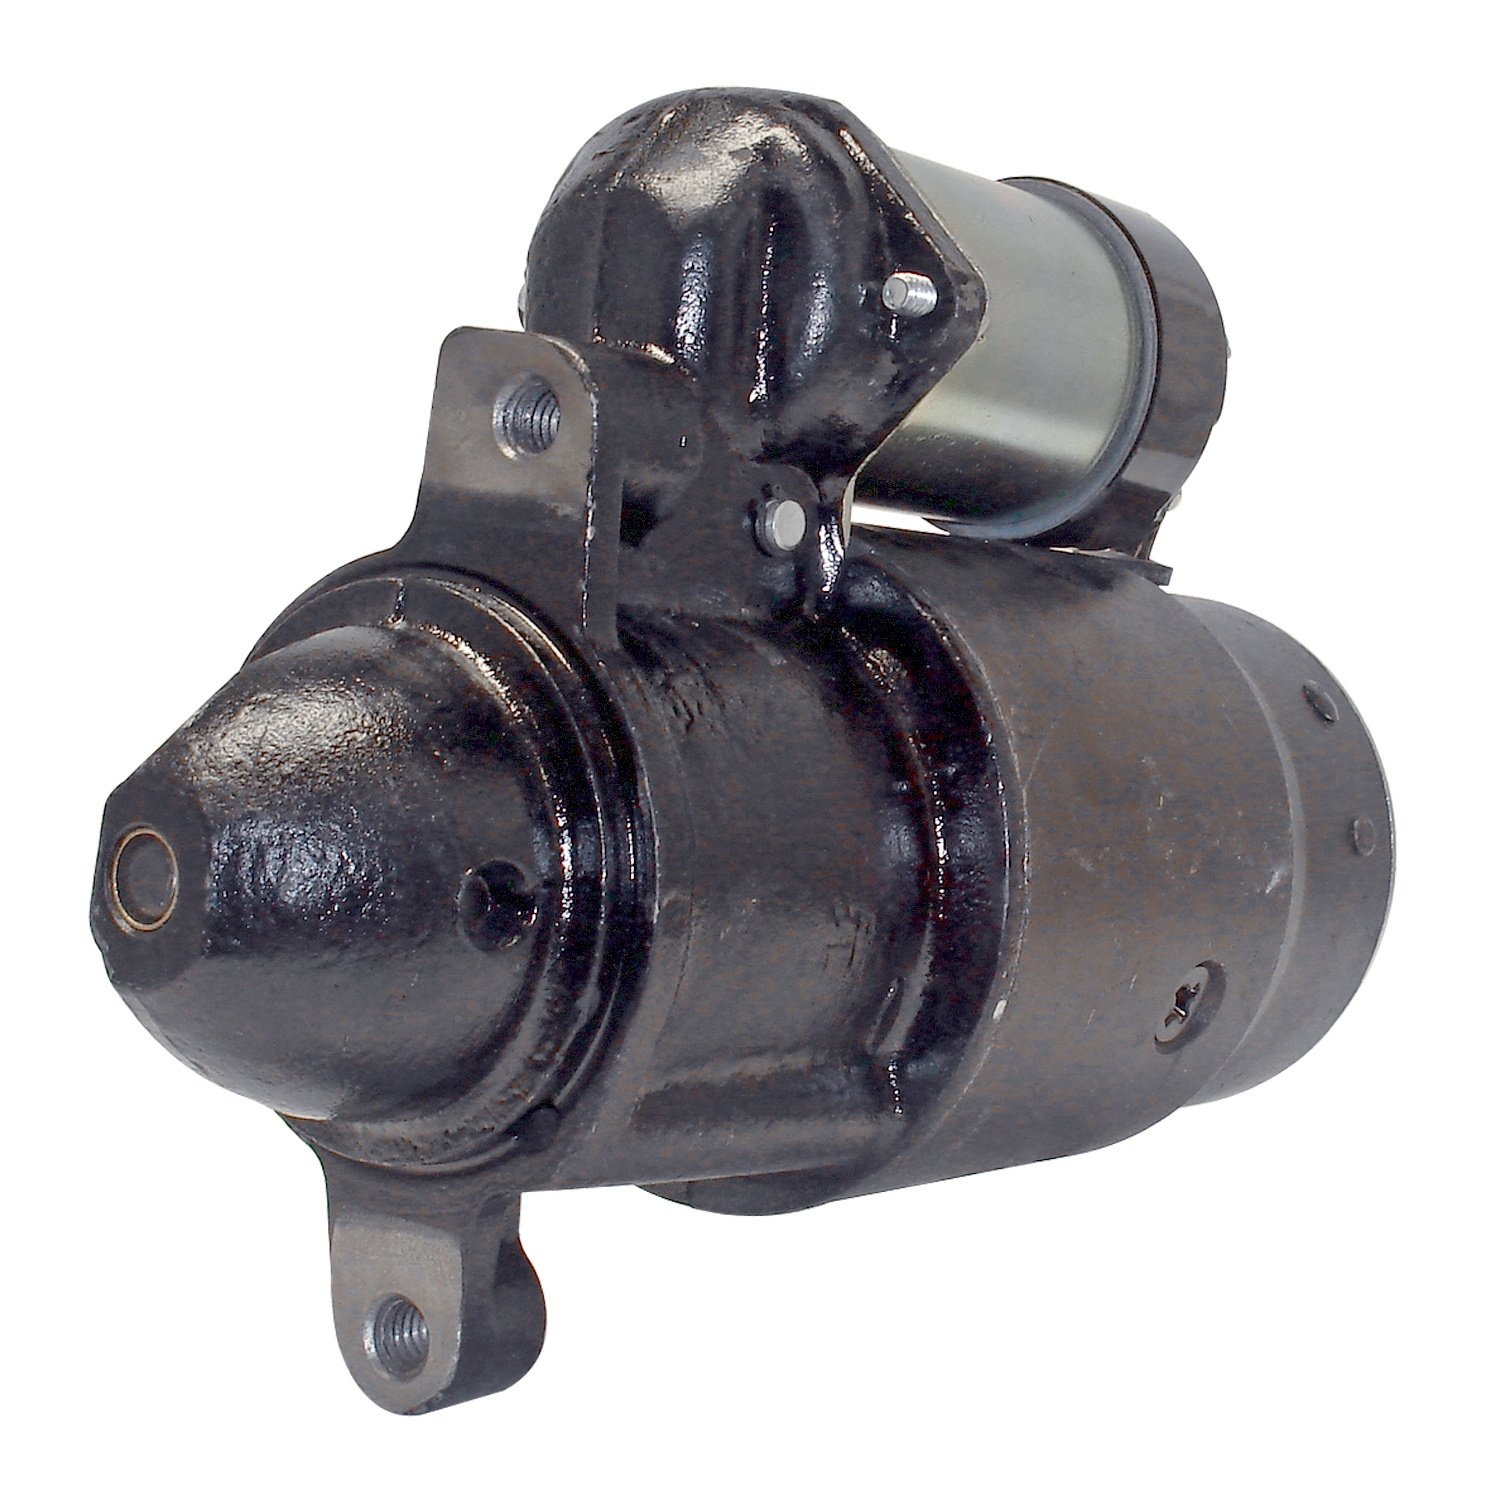 ACDELCO GOLD/PROFESSIONAL - Reman Starter Motor - DCC 336-1845